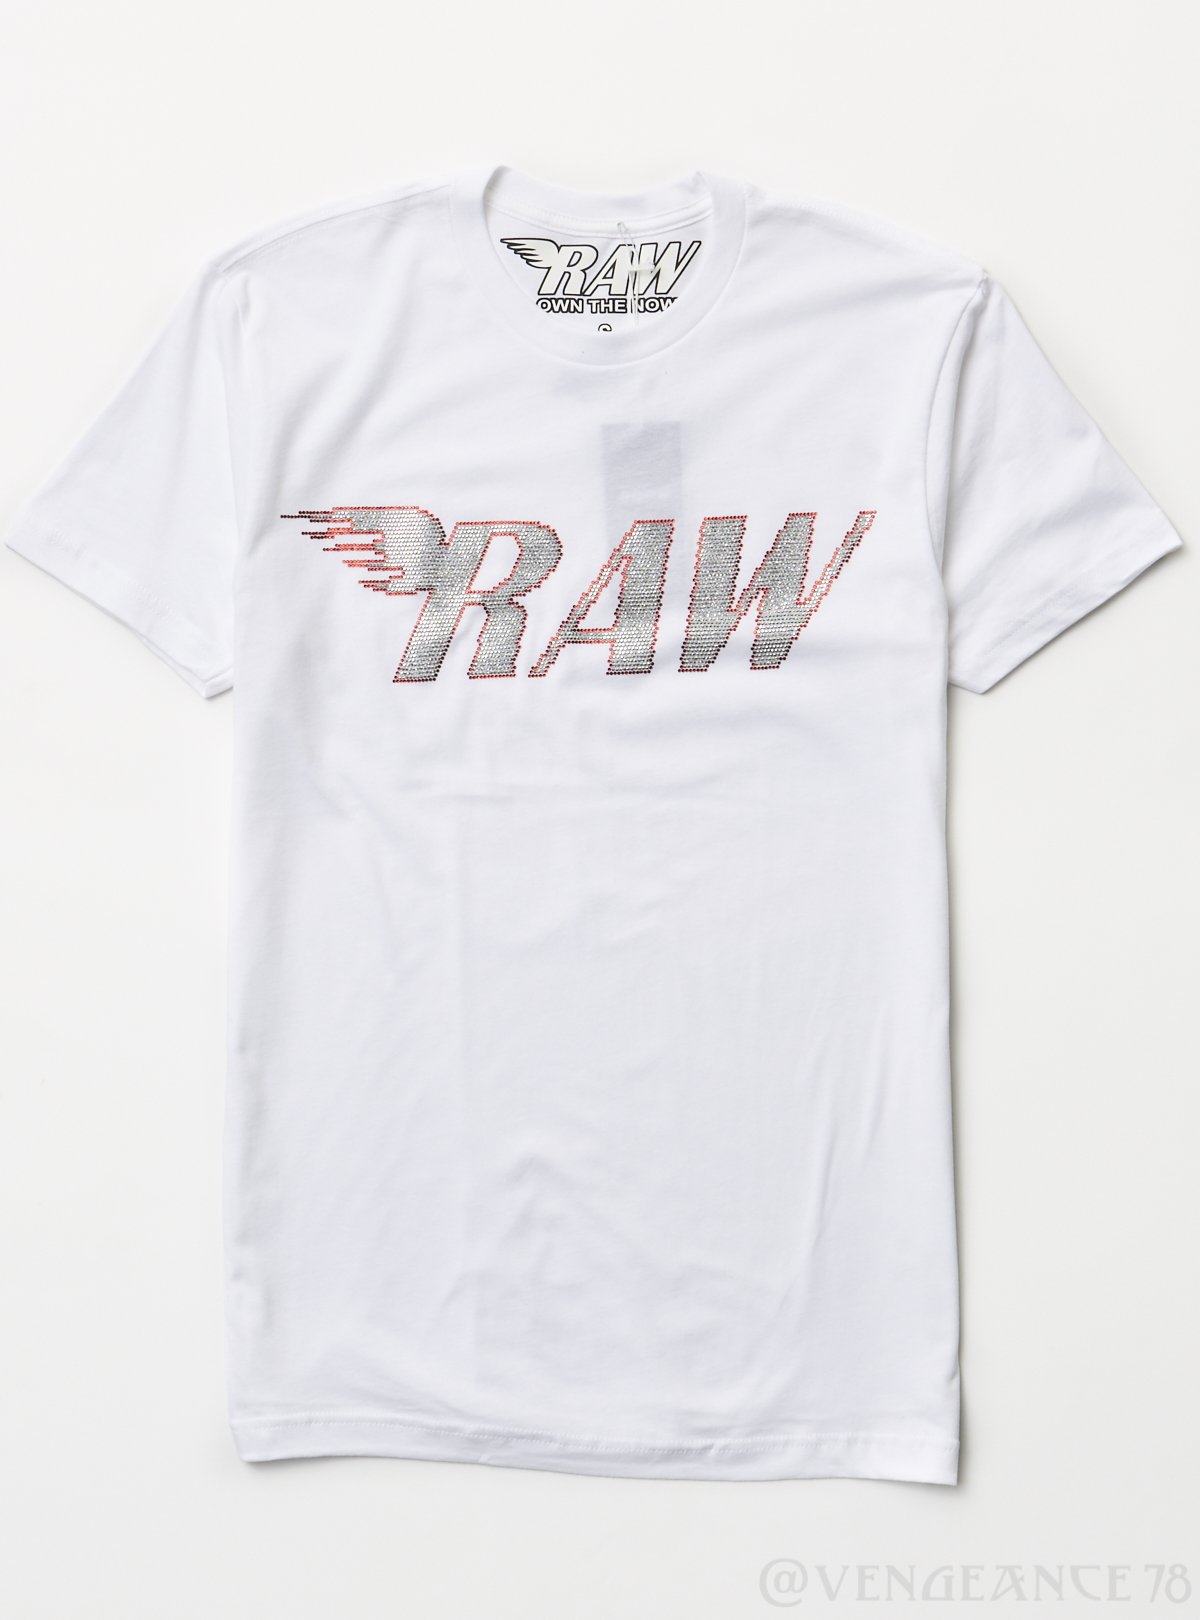 Rawyalty T-Shirt - Raw Stones - Red/Silver and White